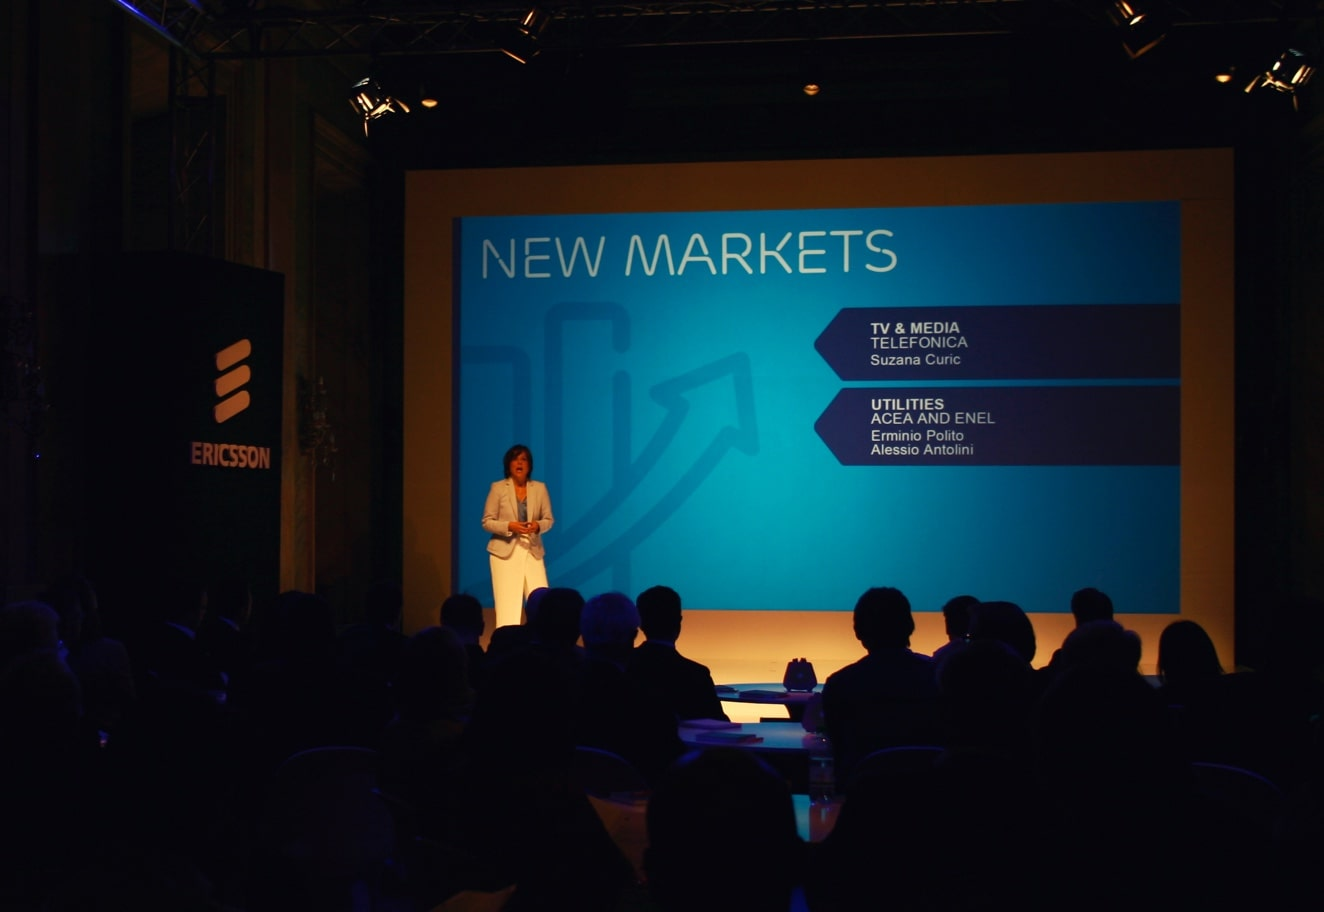 Interactive company presentation for Ericsson - Luther Dsgn agency